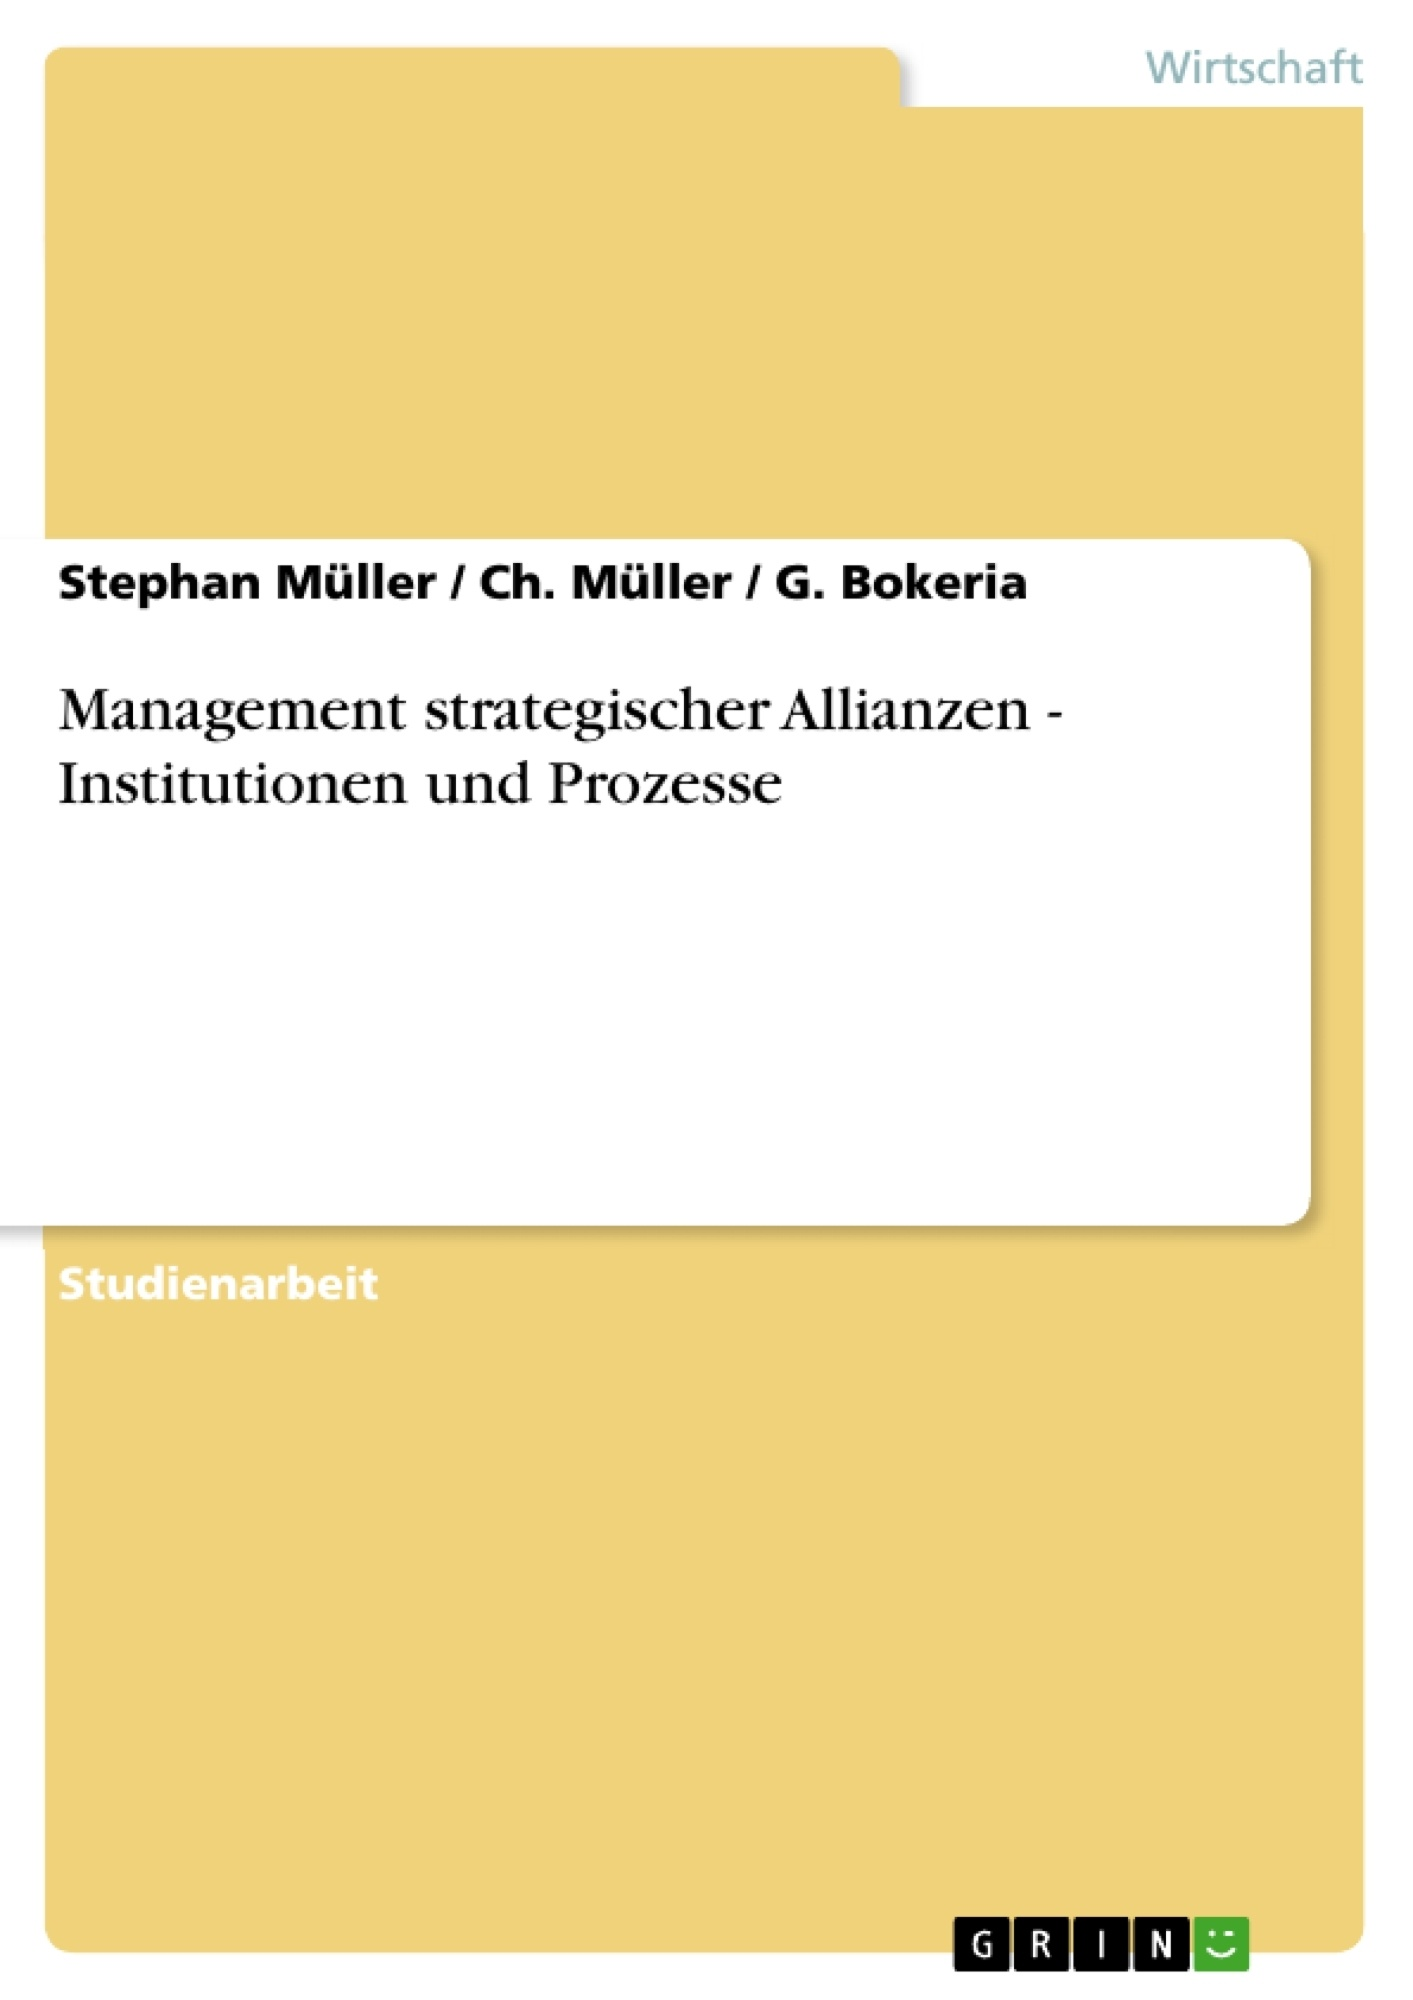 Titel: Management strategischer Allianzen - Institutionen und Prozesse